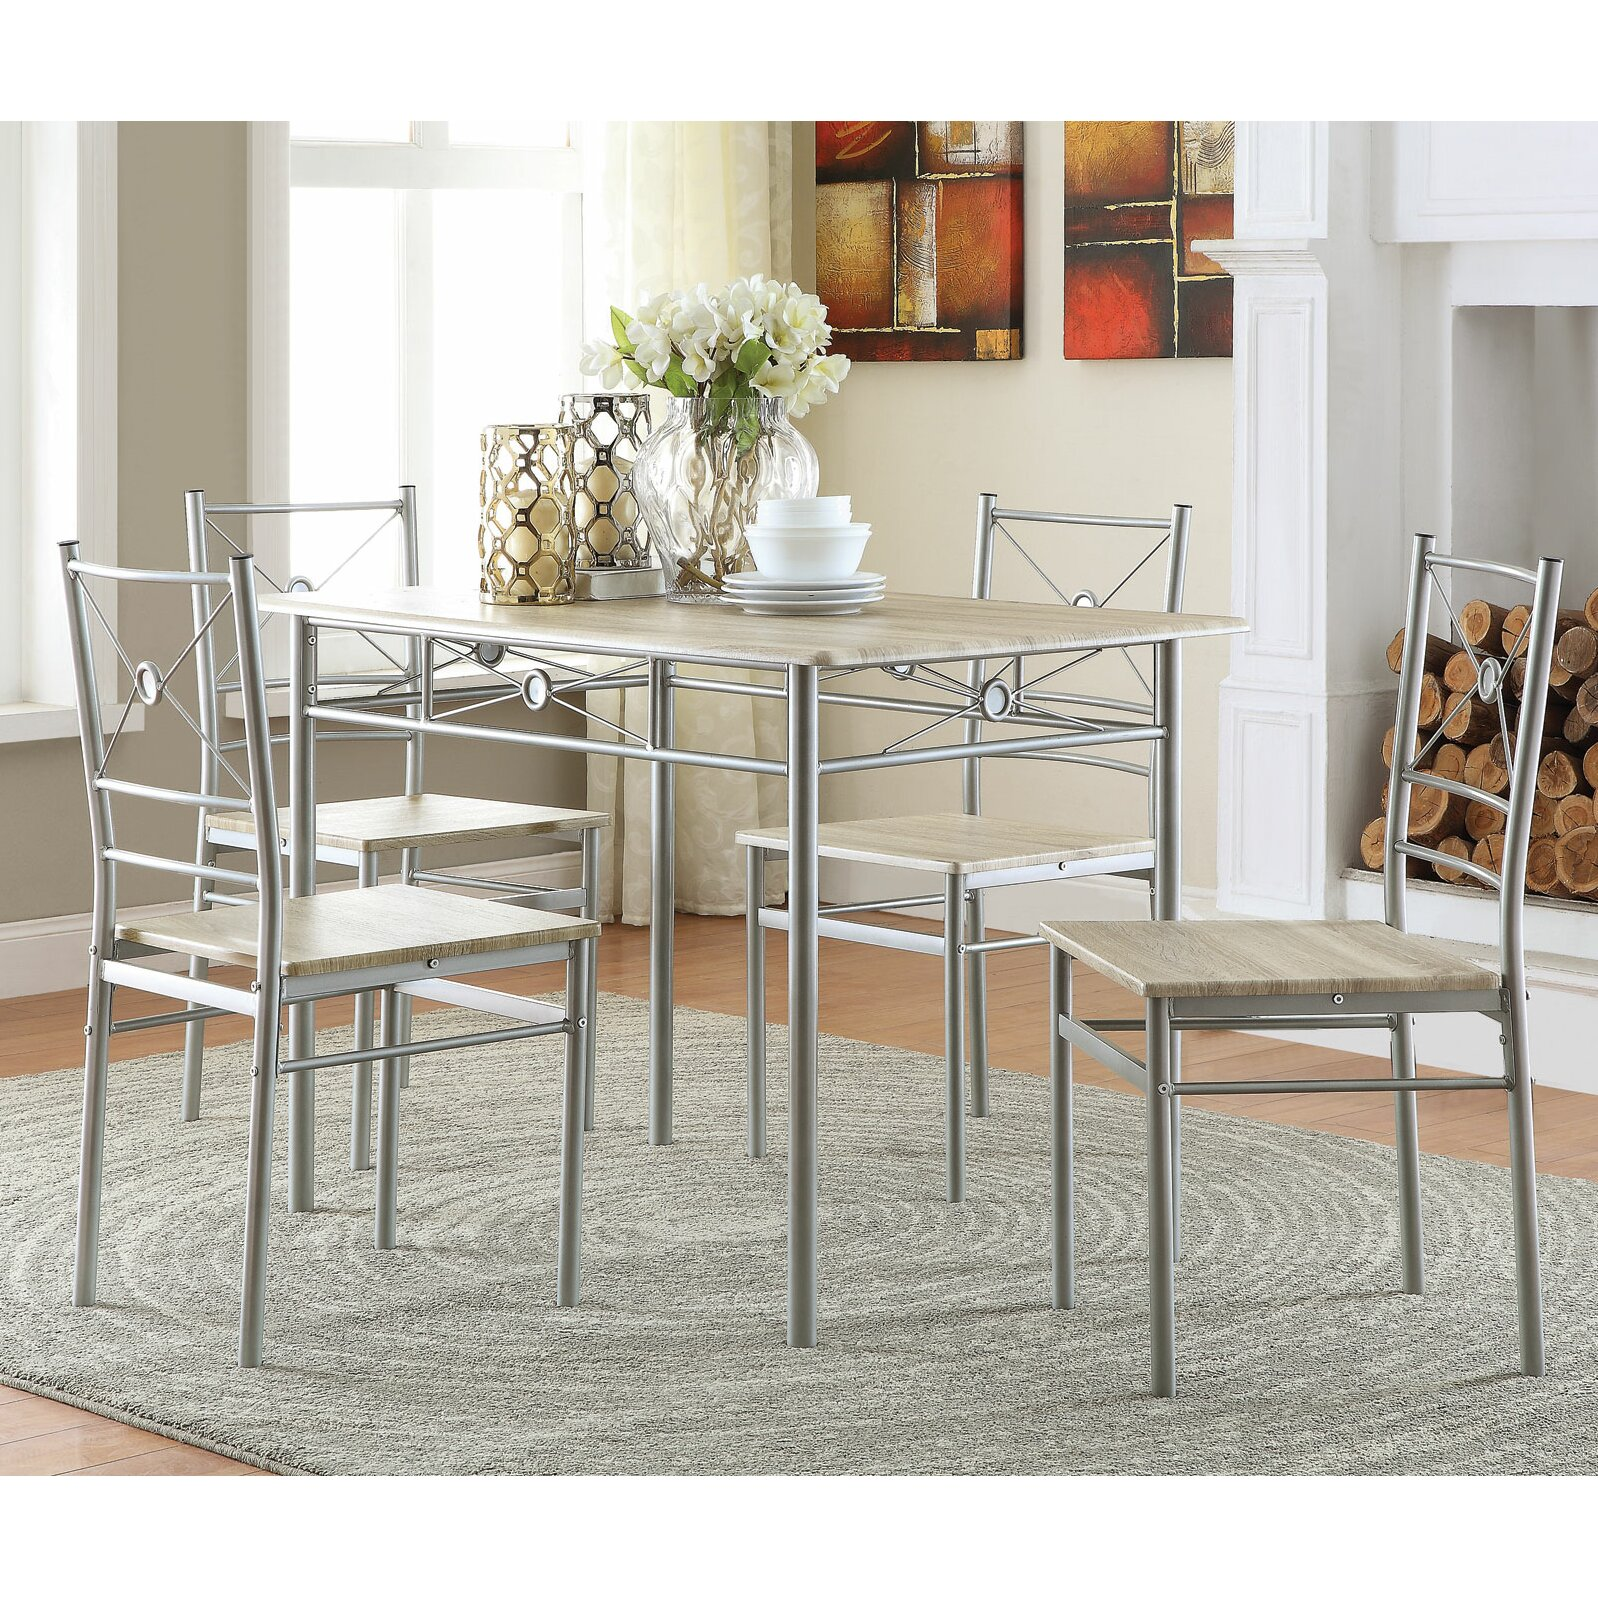 Cheap 5 Piece Dining Set: Wildon Home ® 5 Piece Dining Set & Reviews